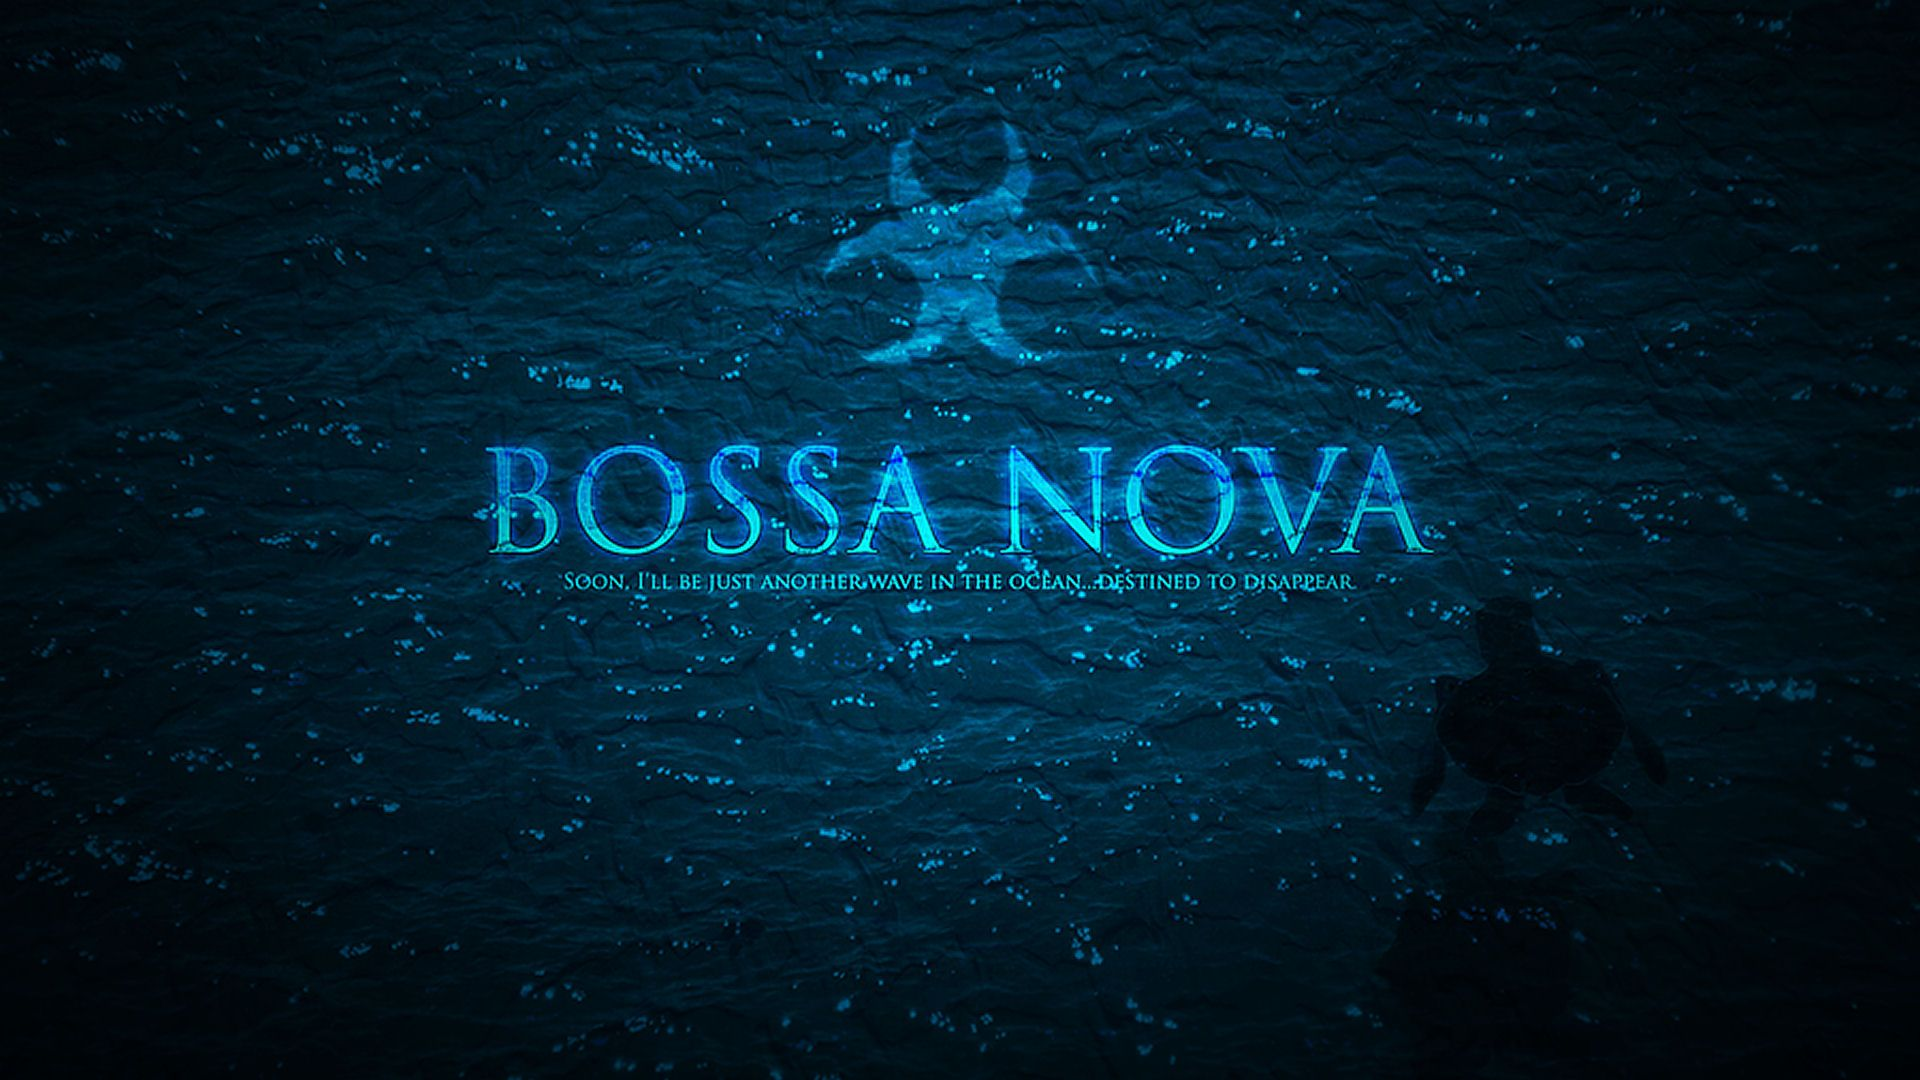 Blue Nova Wallpapers - Top Free Blue Nova Backgrounds